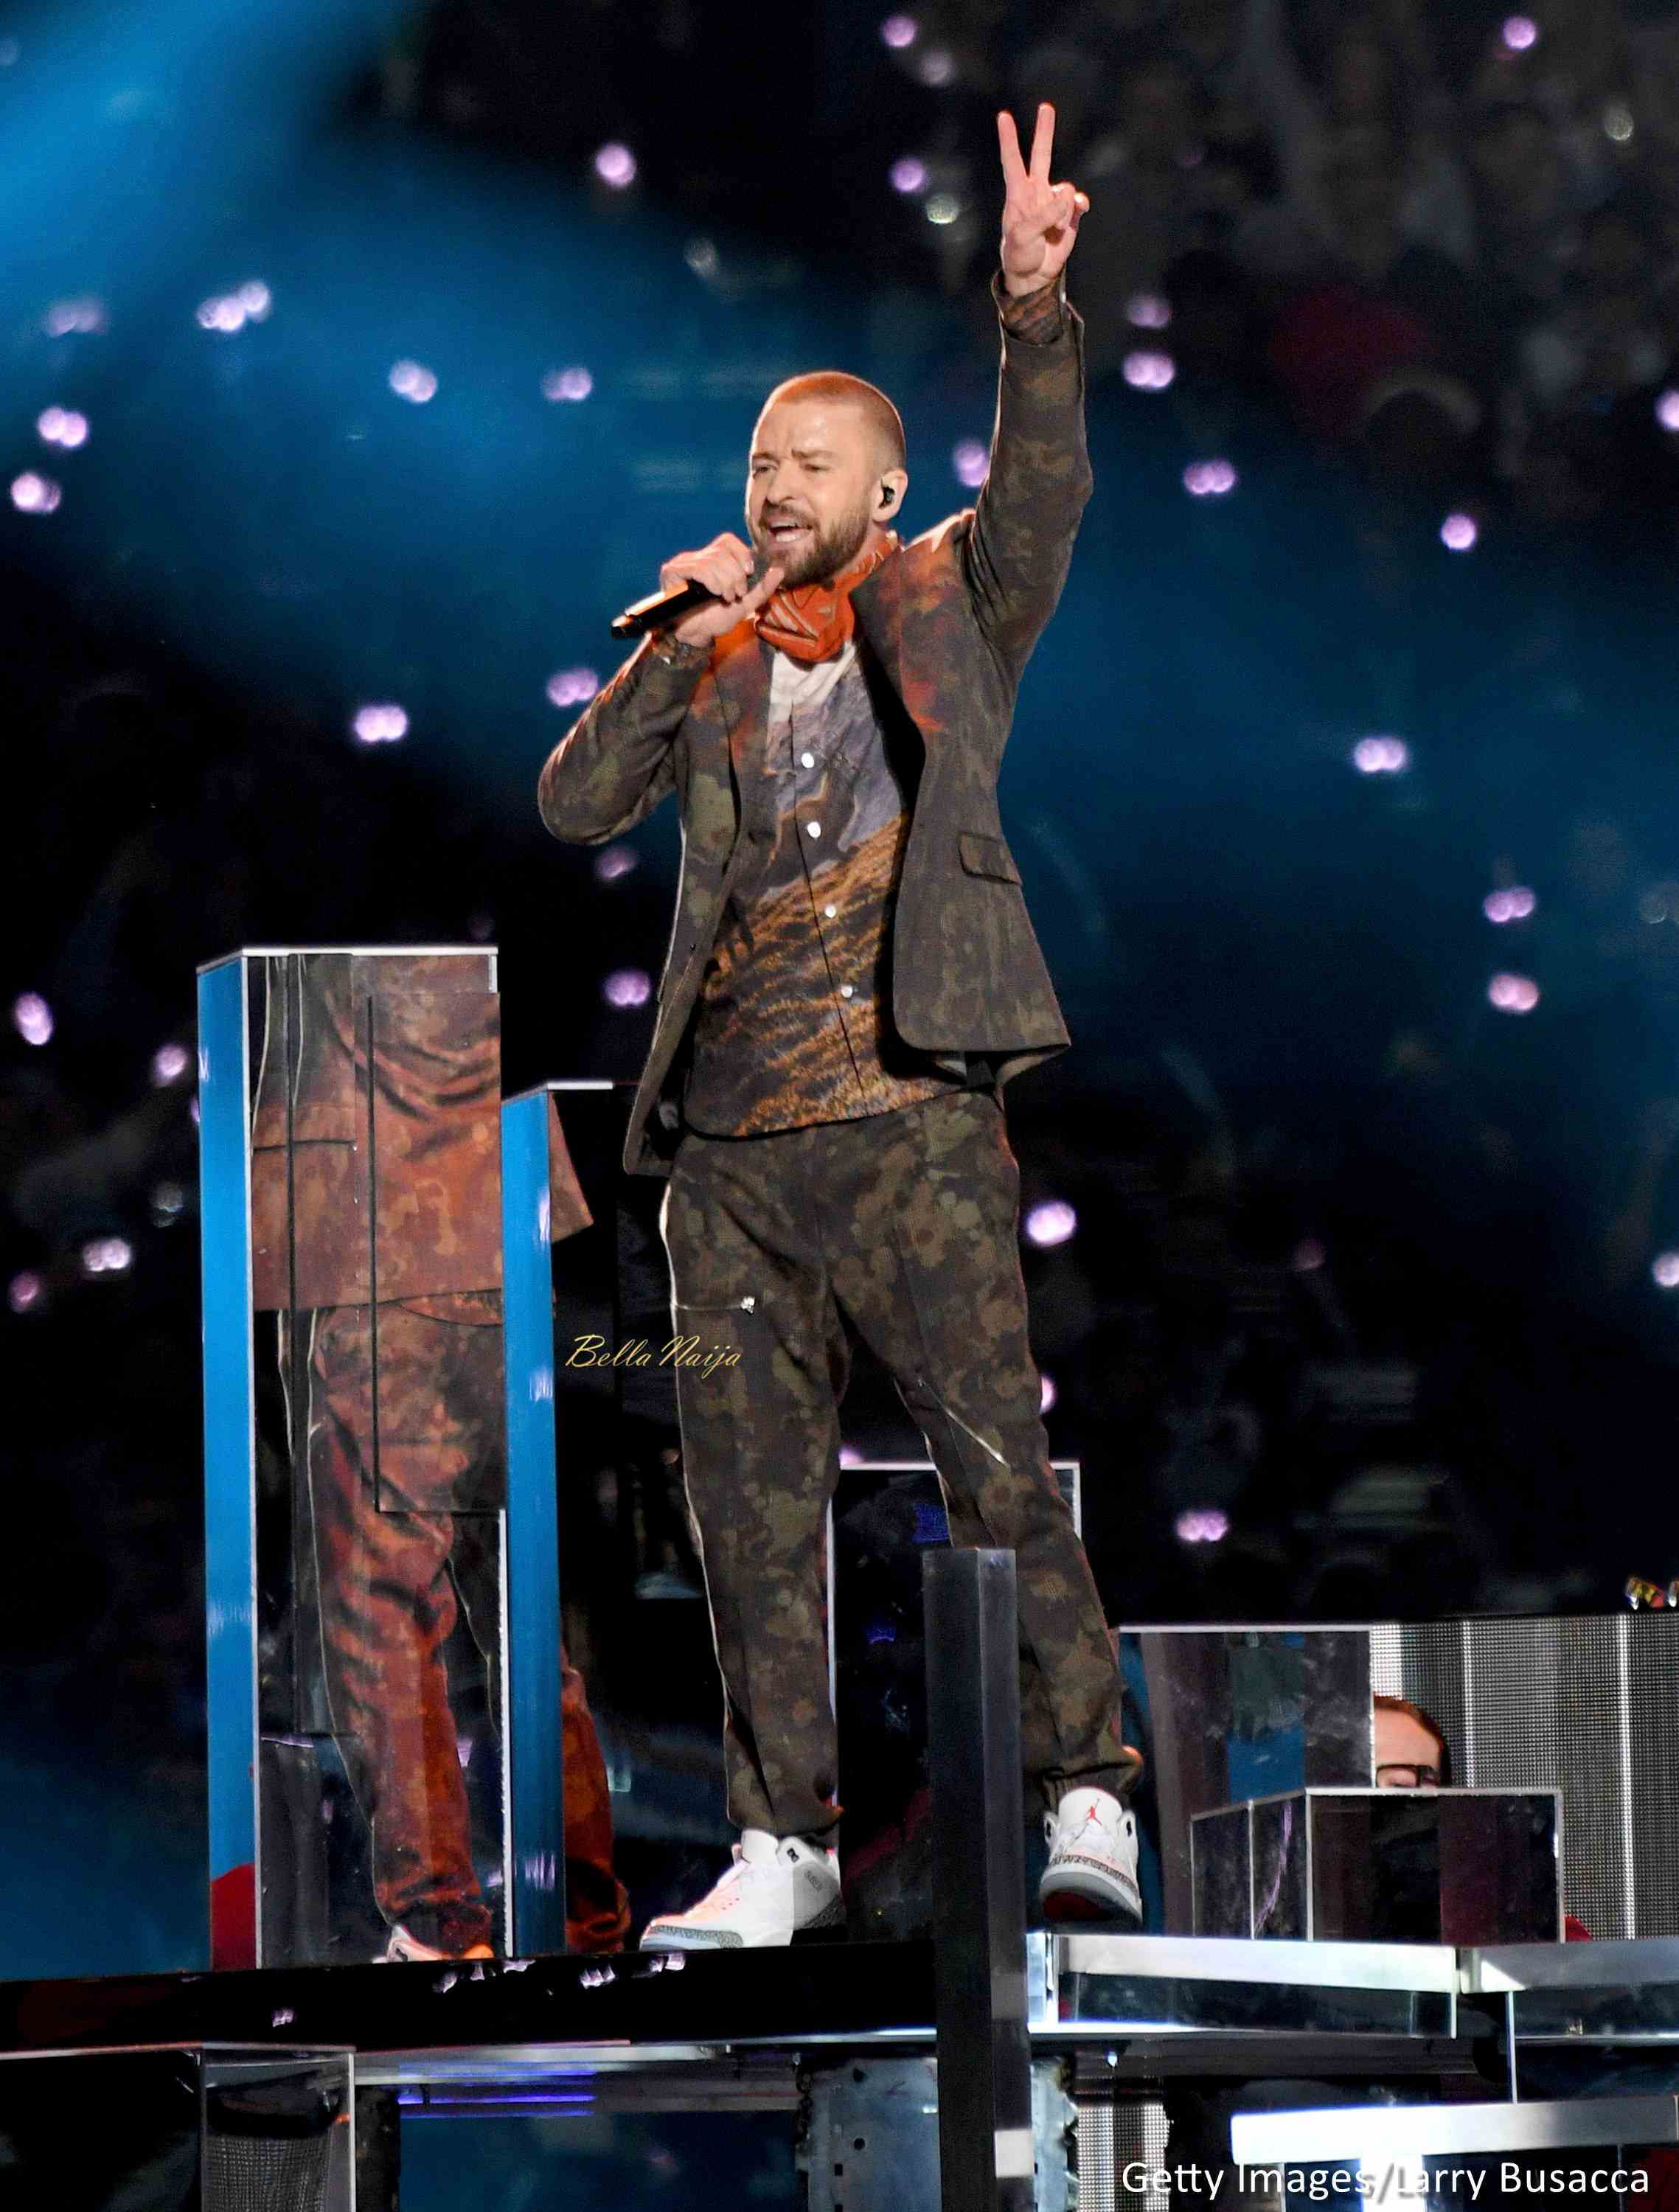 Justin Timberlake performs duet with Prince hologram at the Super Bowl halftime Show and the Internet is having none of that